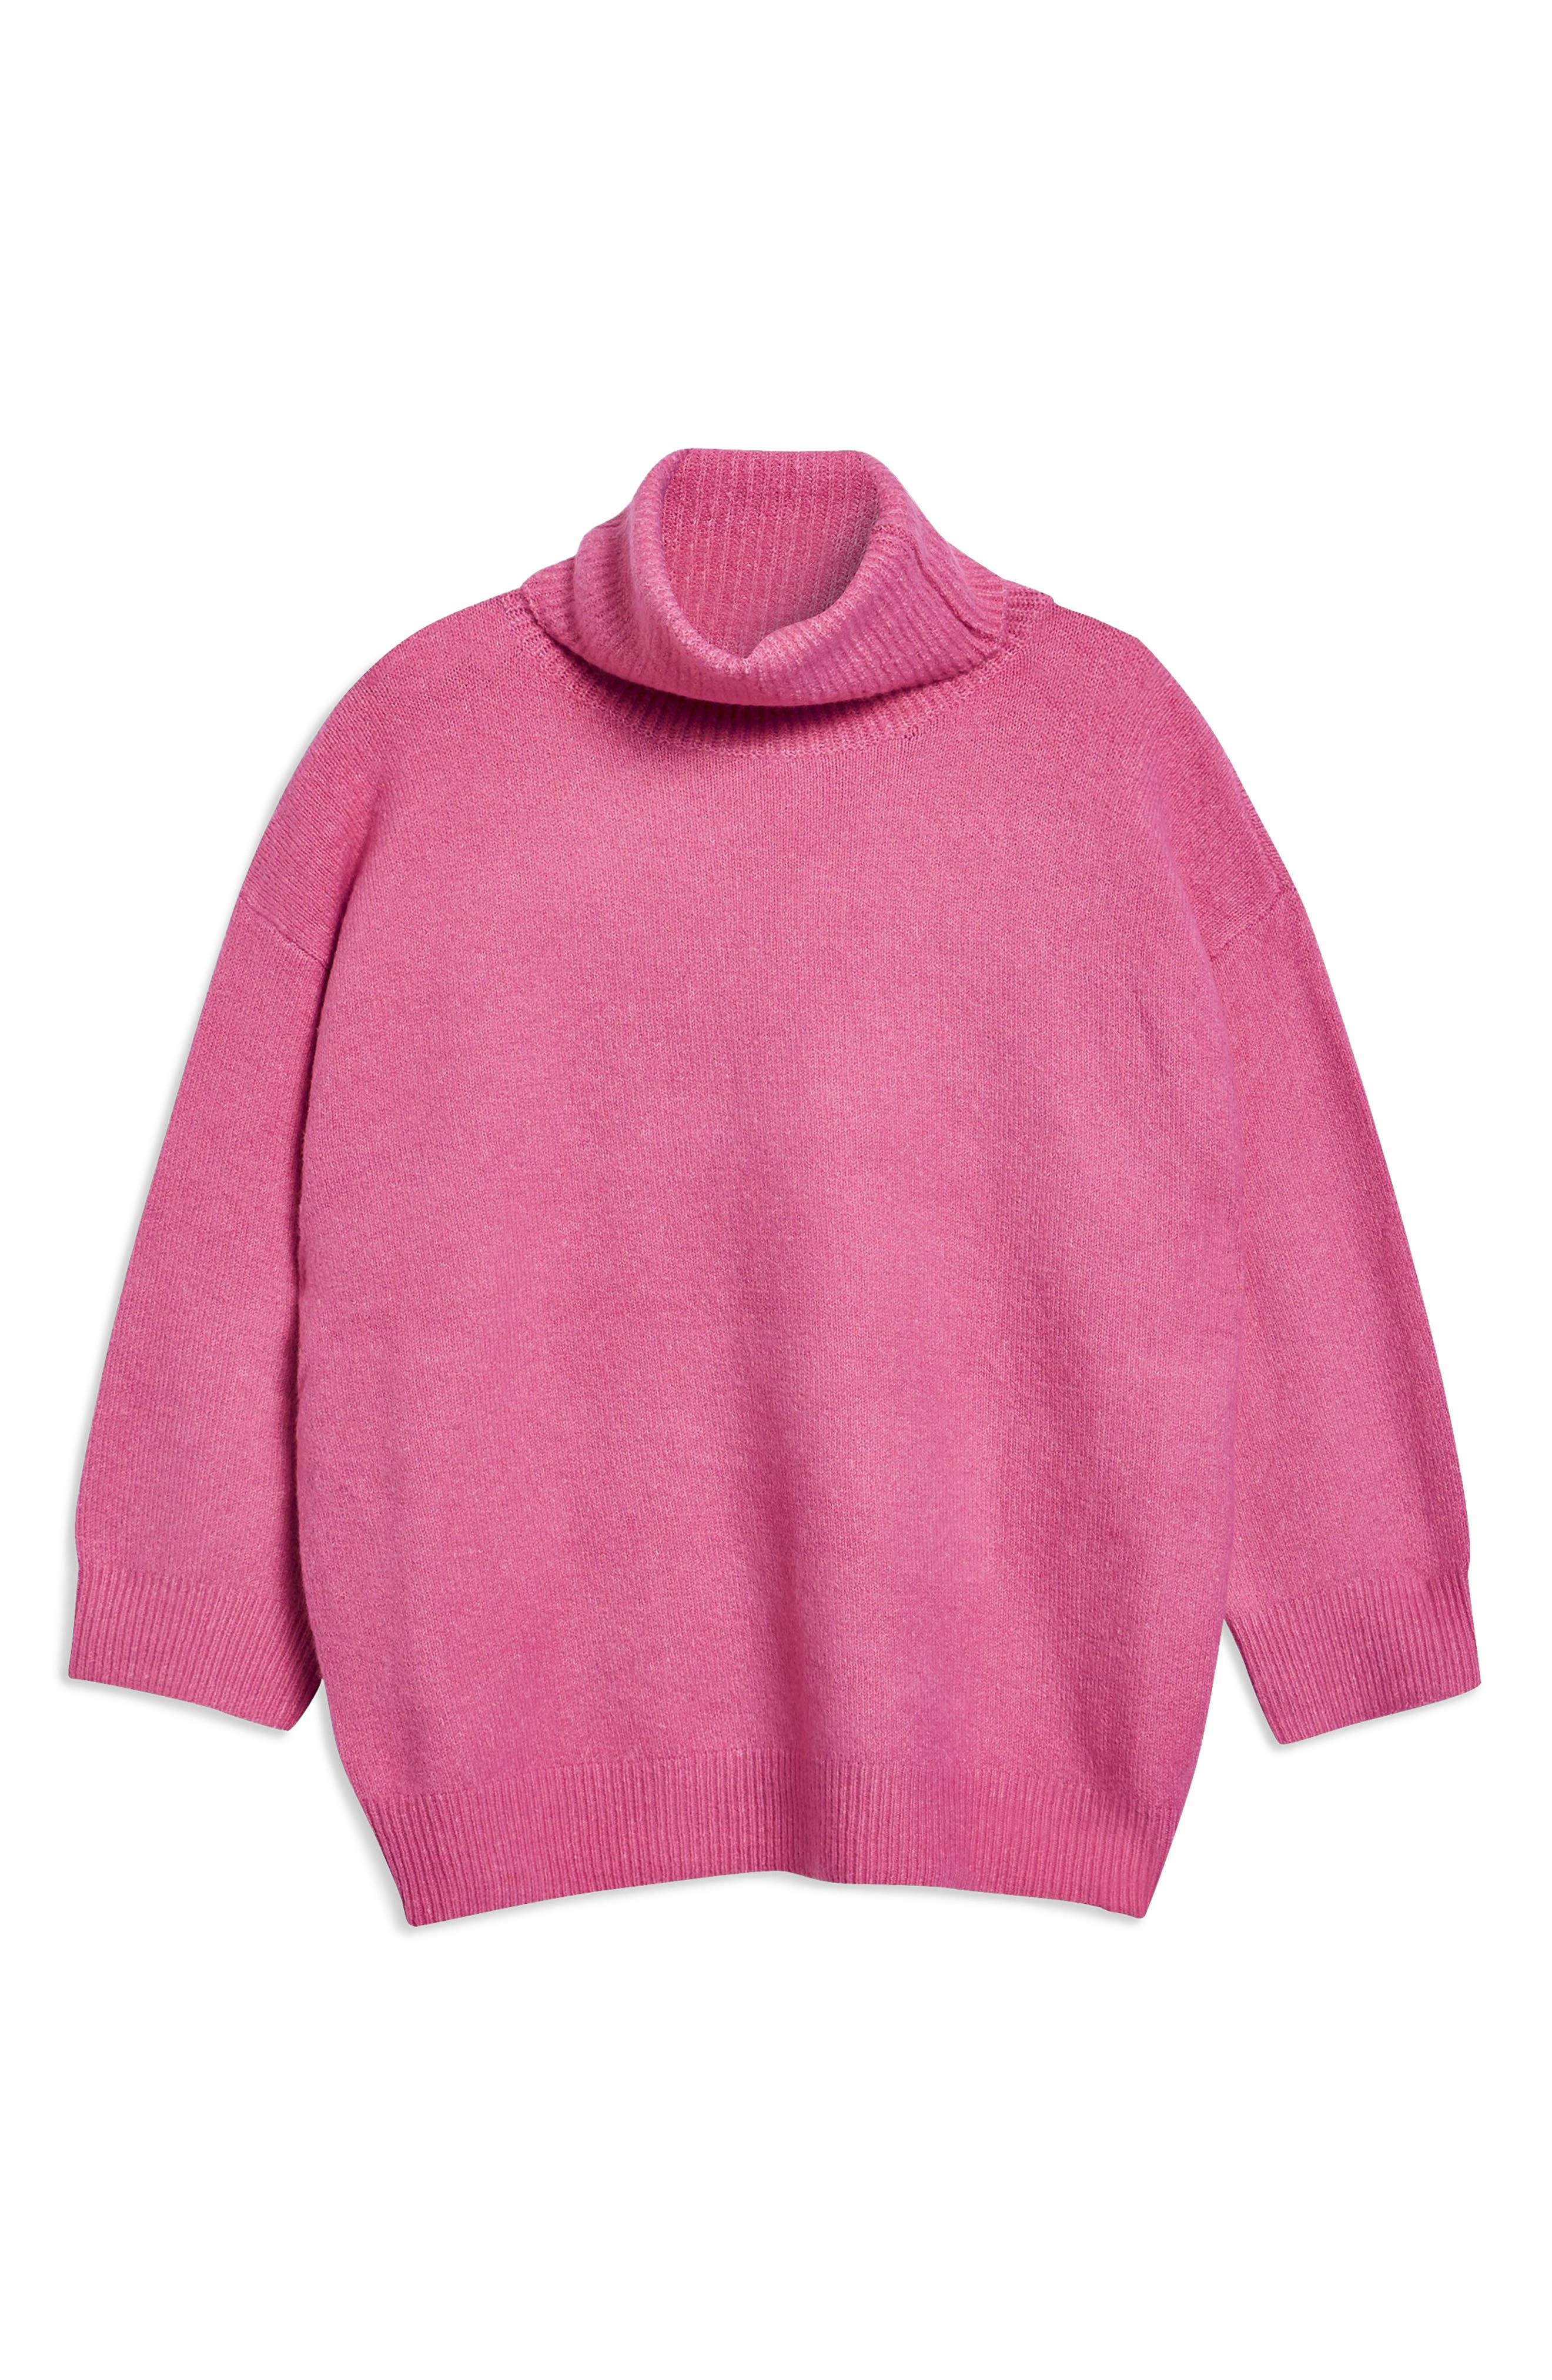 Oversize Turtleneck Sweater,                             Alternate thumbnail 3, color,                             BRIGHT PINK